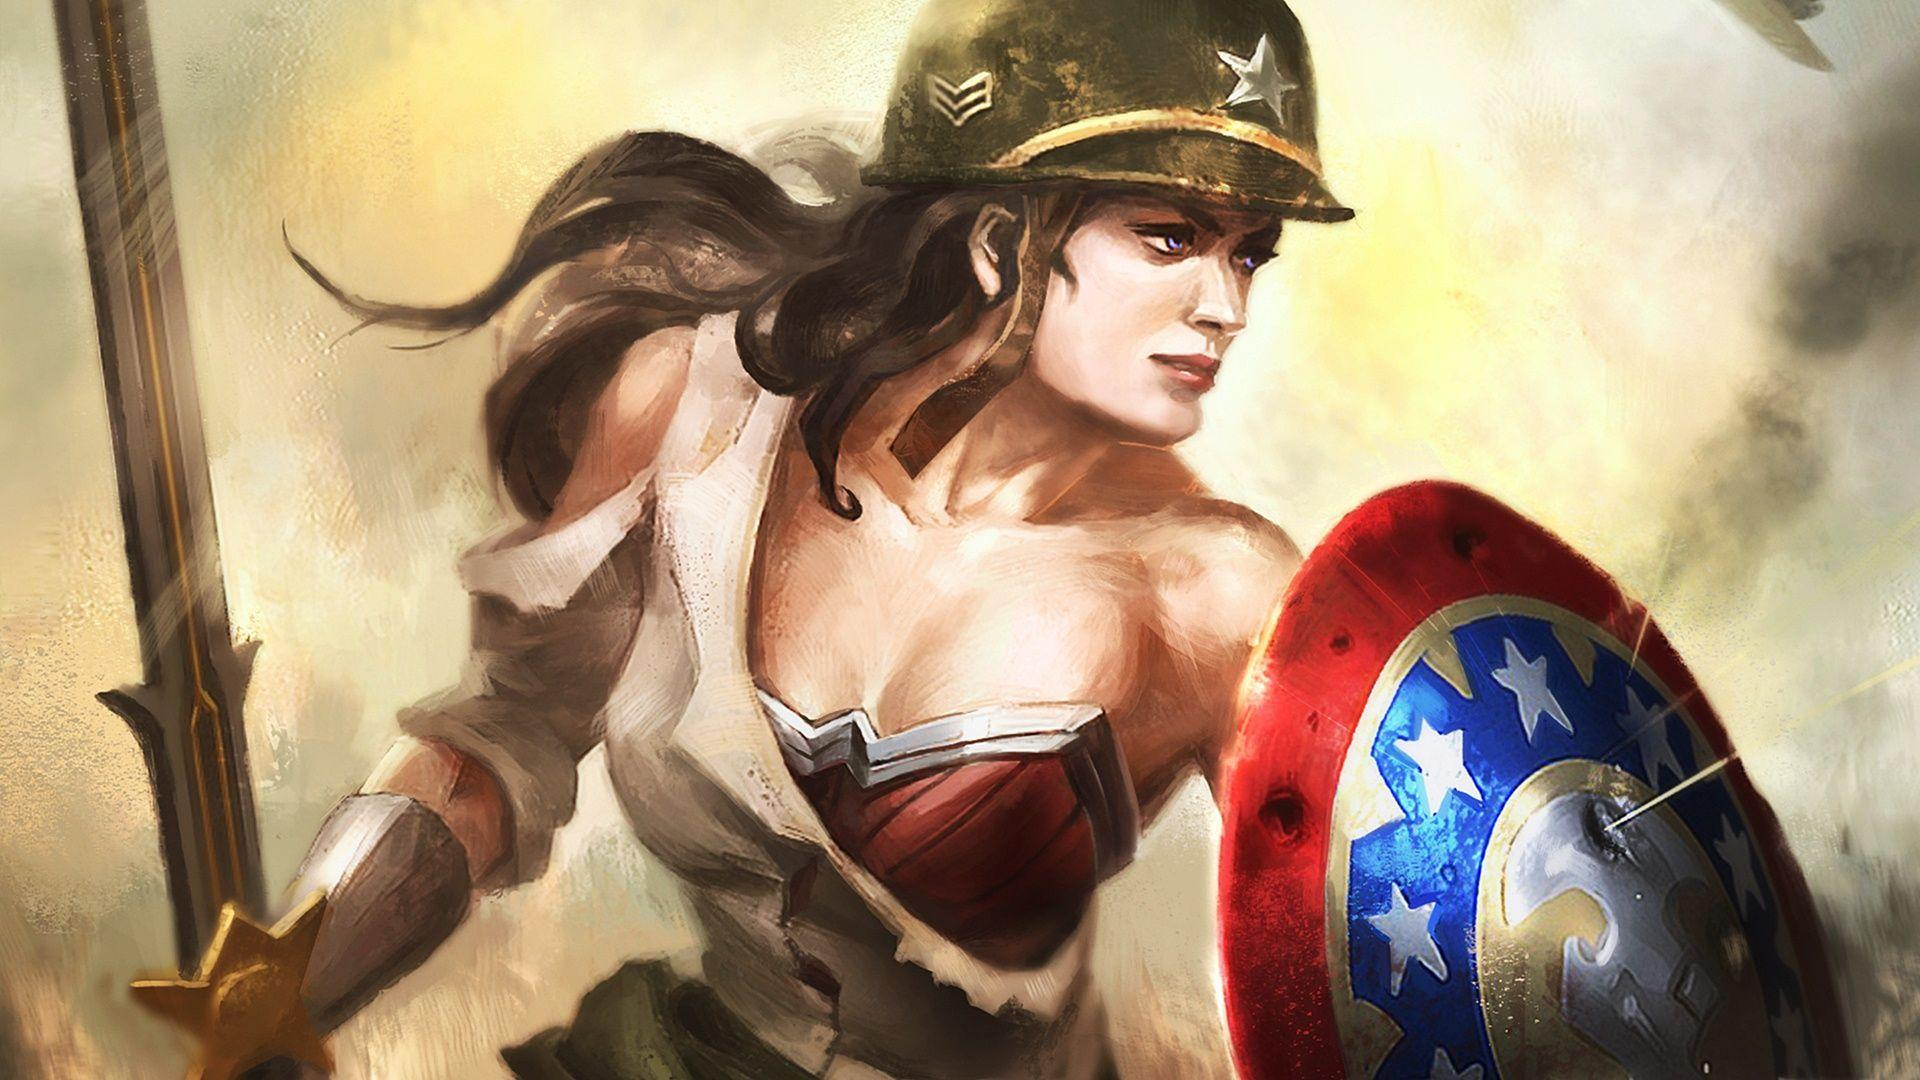 Wonder Woman wallpaper – wallpaper free download